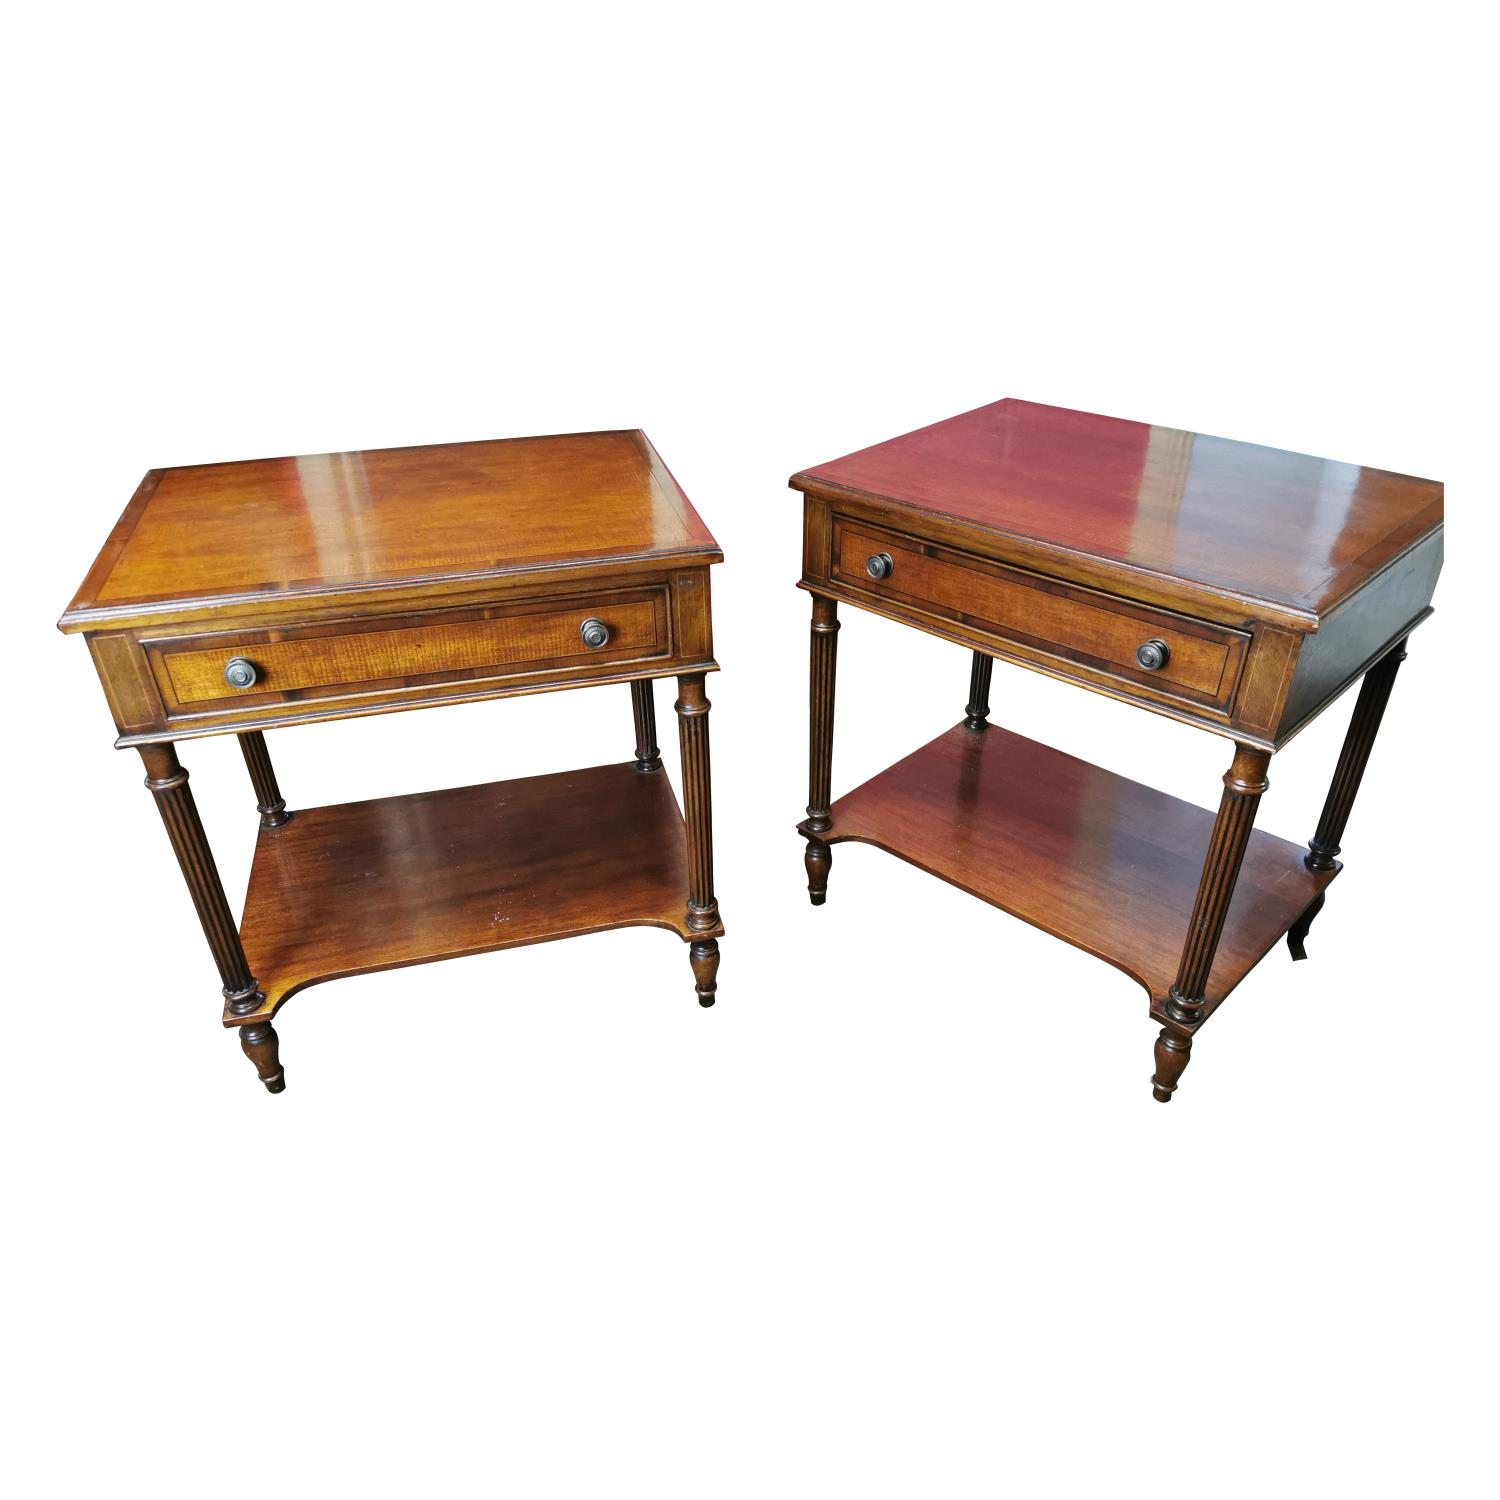 Pair of inlaid mahogany two tier lamp tables